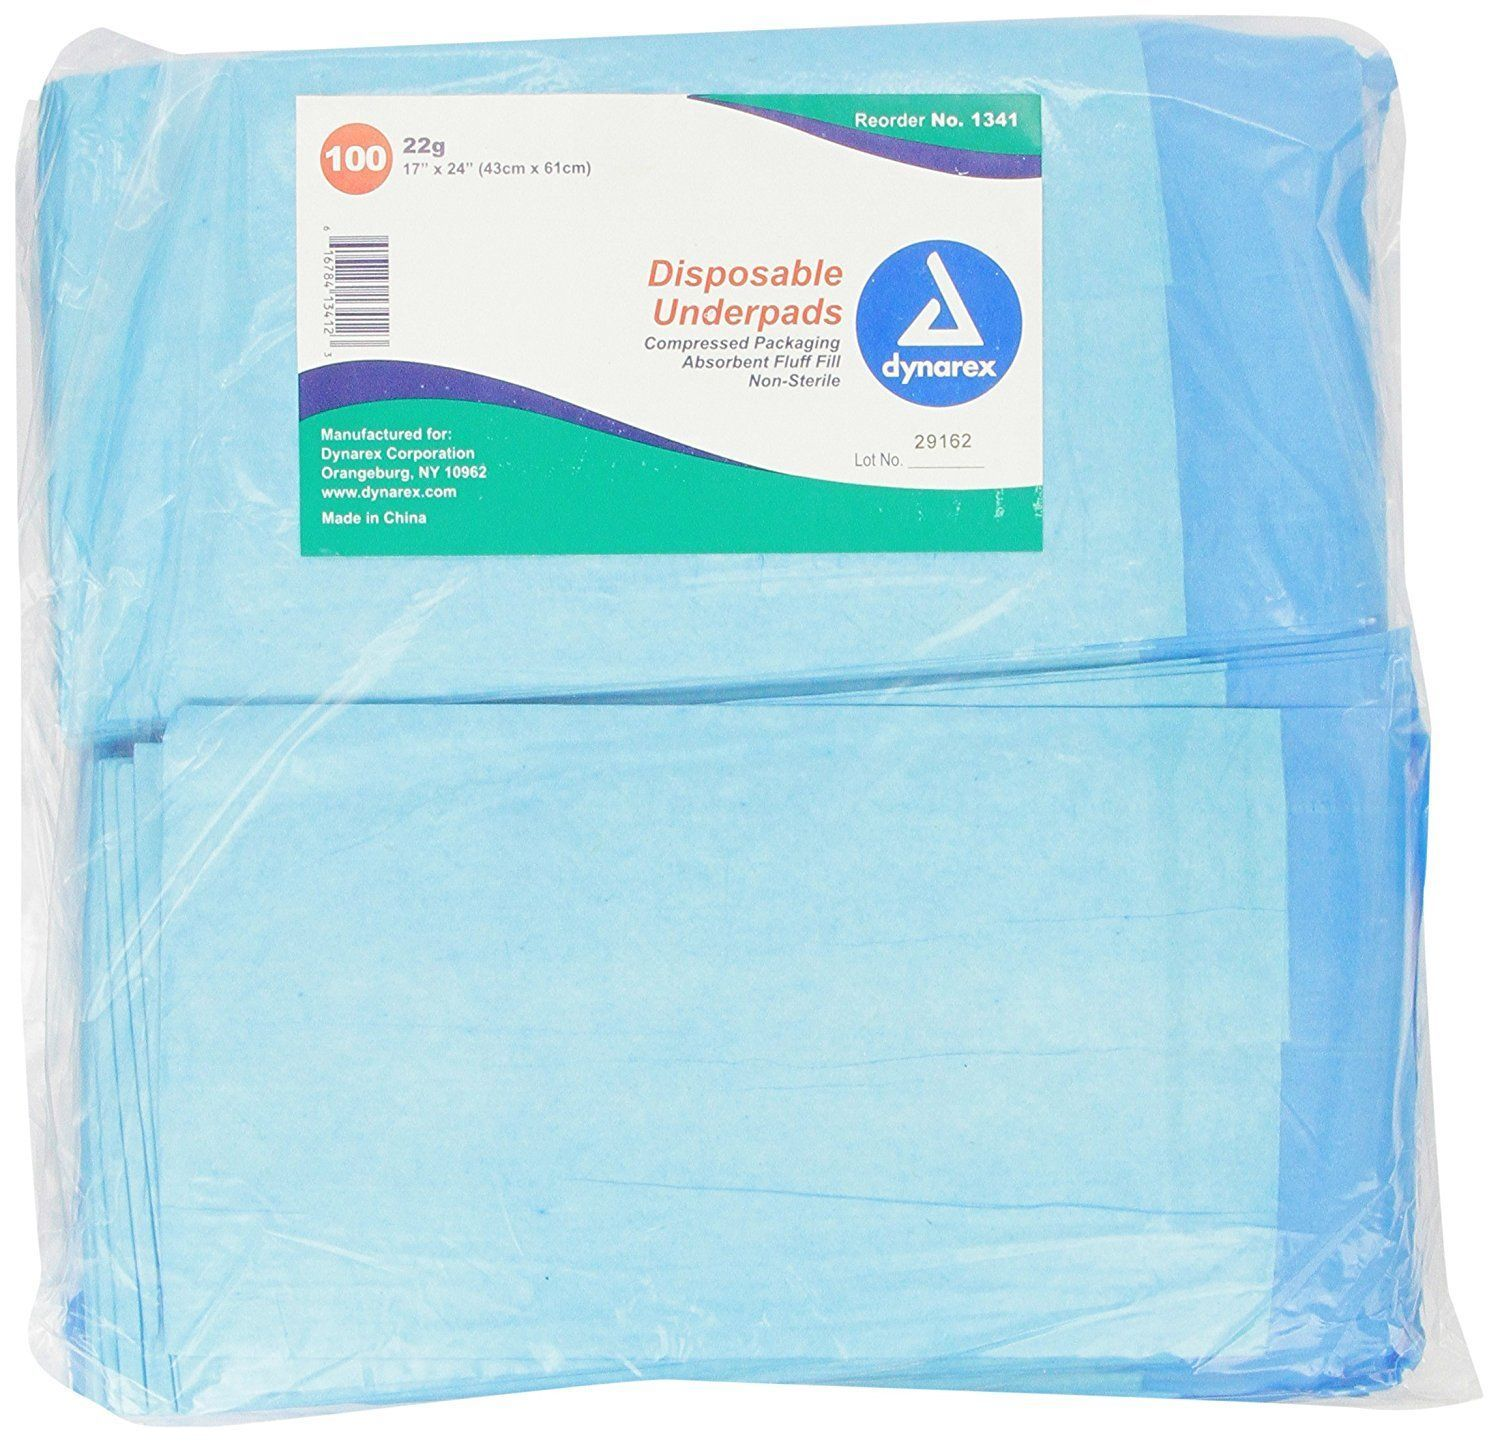 Disposable Underpad 100Pcs Waterproof Urinary Incontinence